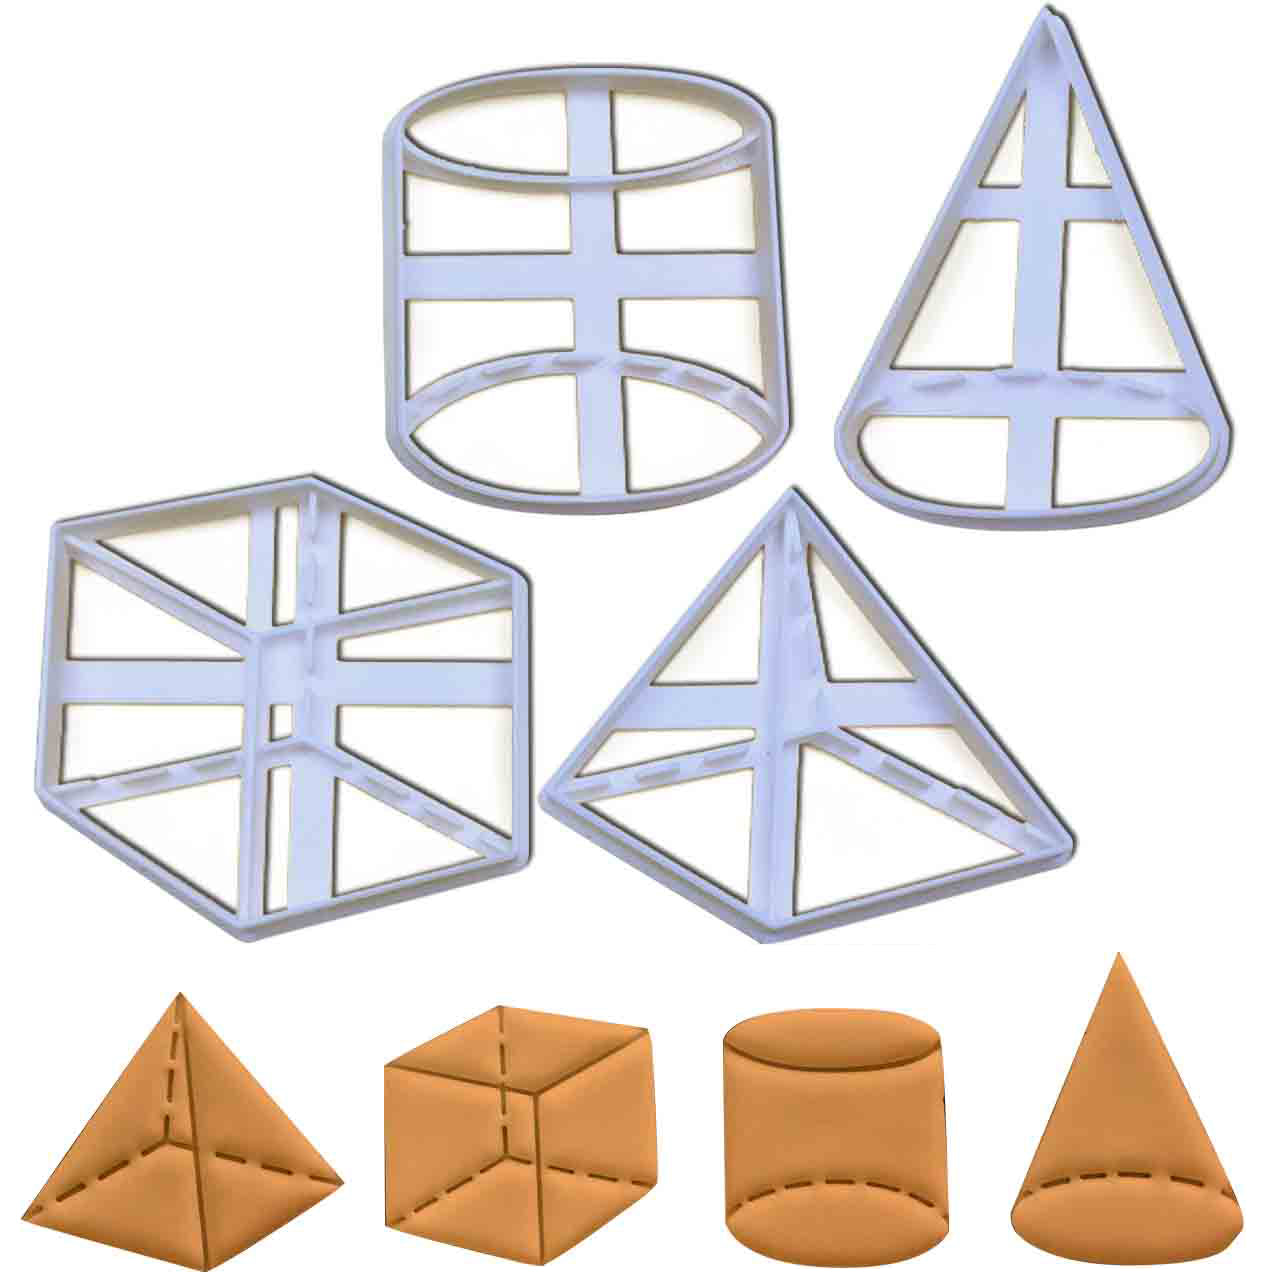 set of 4 3D geometric shape cookie cutters, featuring a cone, cube, cylinder and a pyramid